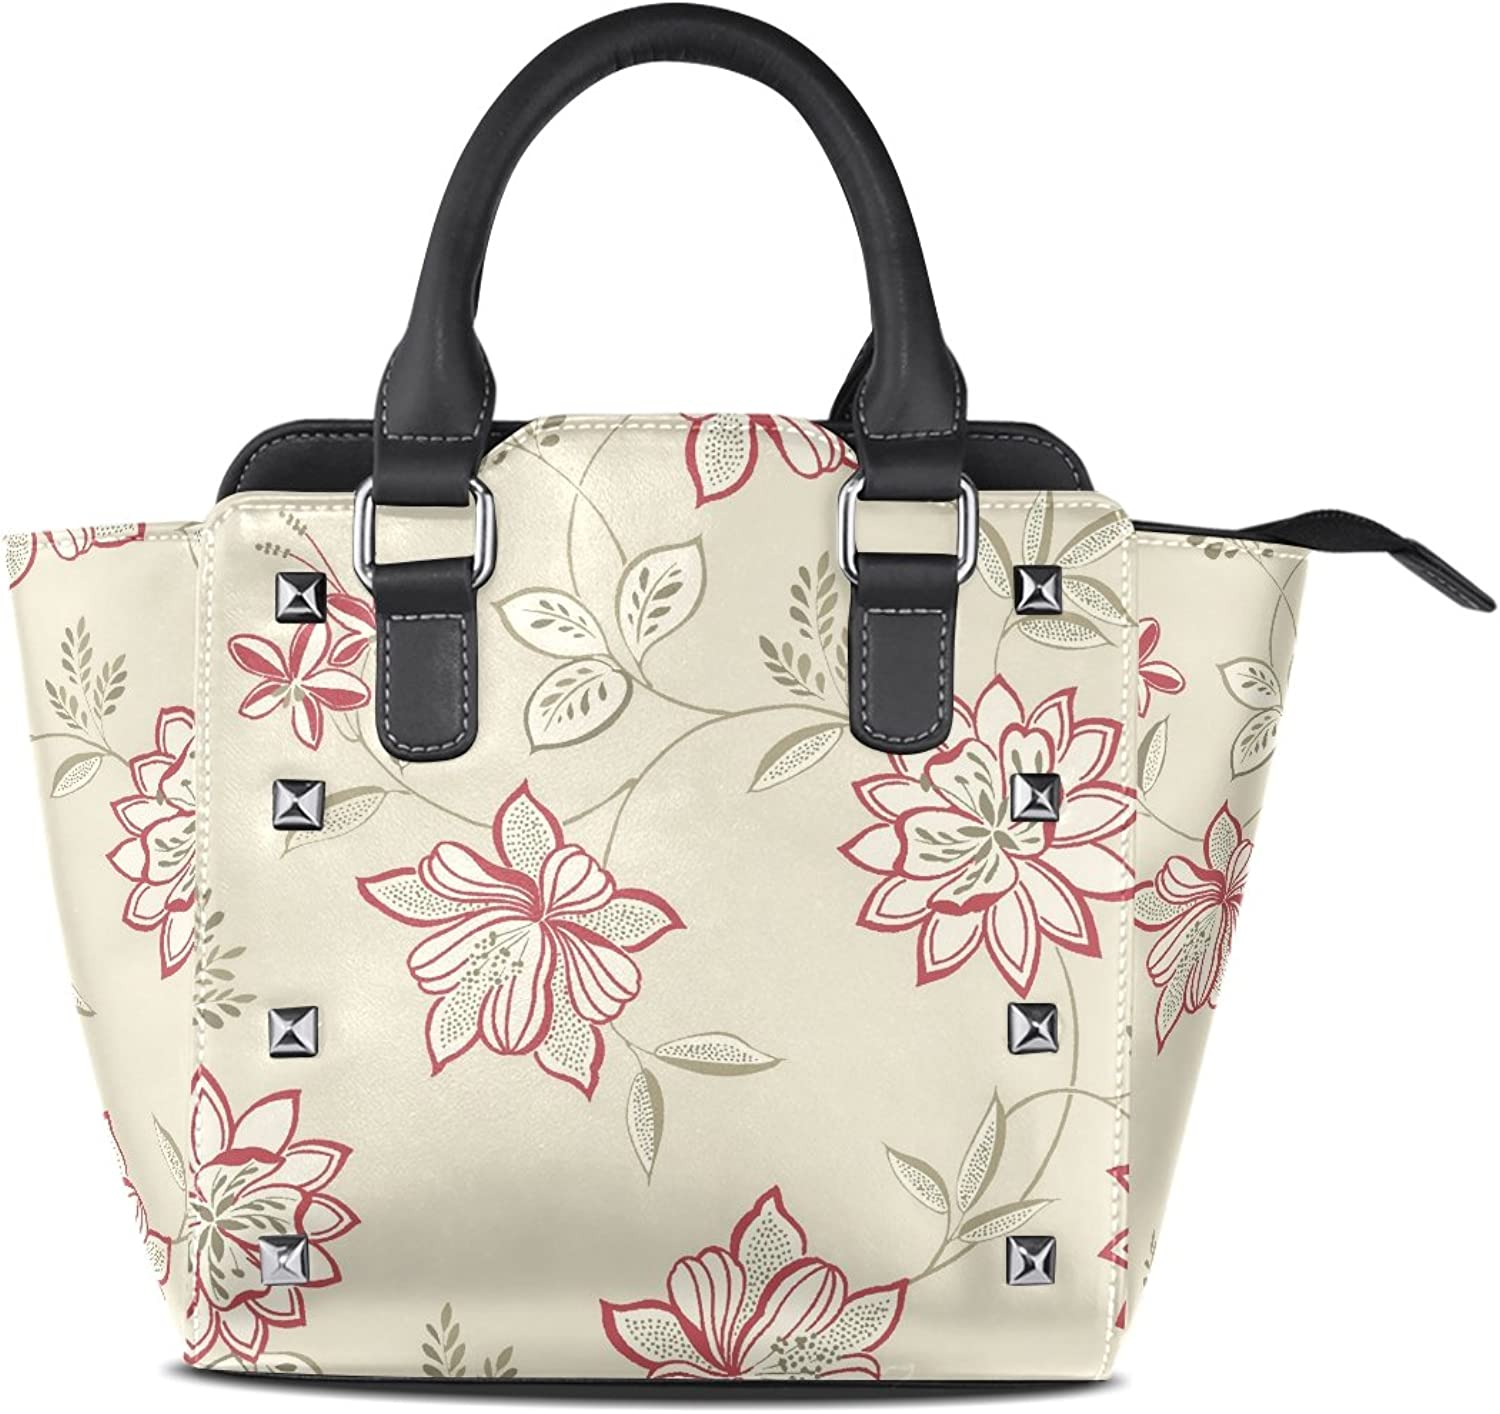 Sunlome Retro Flower Print Women's Leather Tote Shoulder Bags Handbags